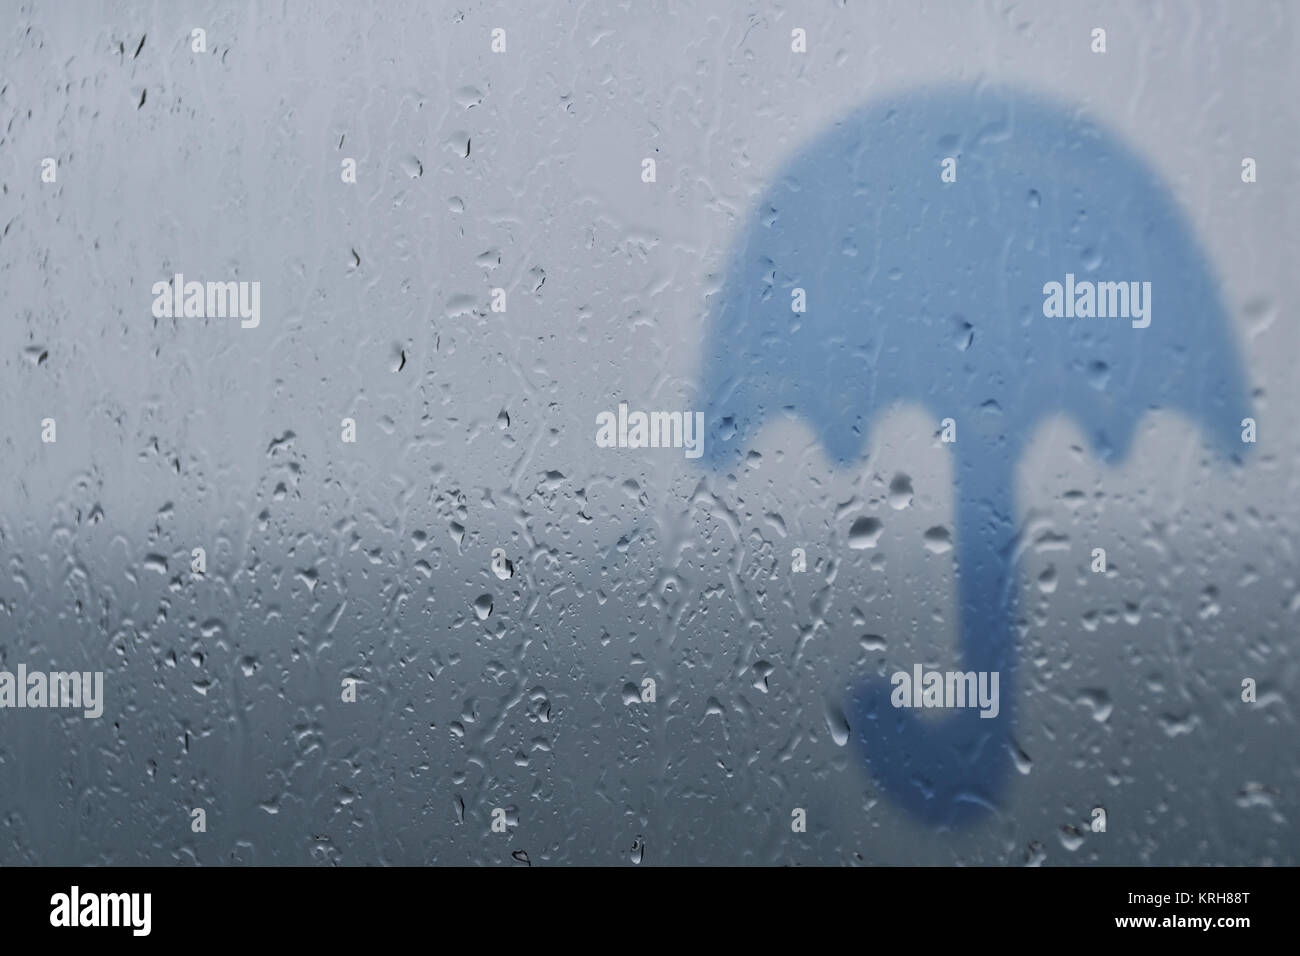 Silhouette of an umbrella on a background of glass with drops and raindrops. Autumn rain. - Stock Image